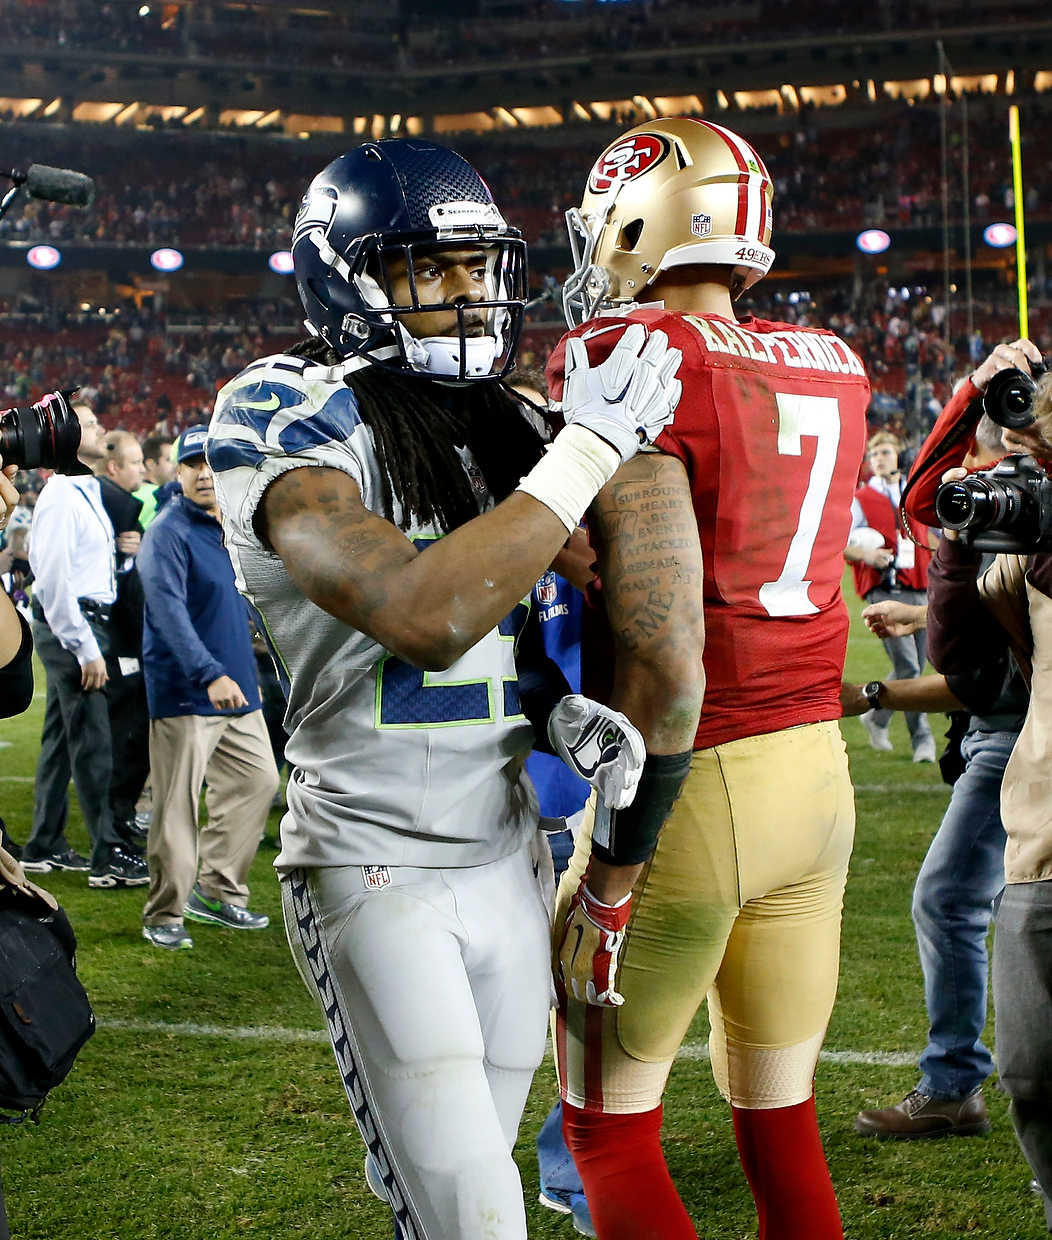 San Francisco 49ers quarterback Colin Kaepernick is tapped on the back by the Seattle Seahawks Richard Sherman as they leave the field after a 19-3 Seattle win at Levi's Stadium in Santa Clara Calif. on Thursday Nov. 27 2014. (Josie Lepe  Ba